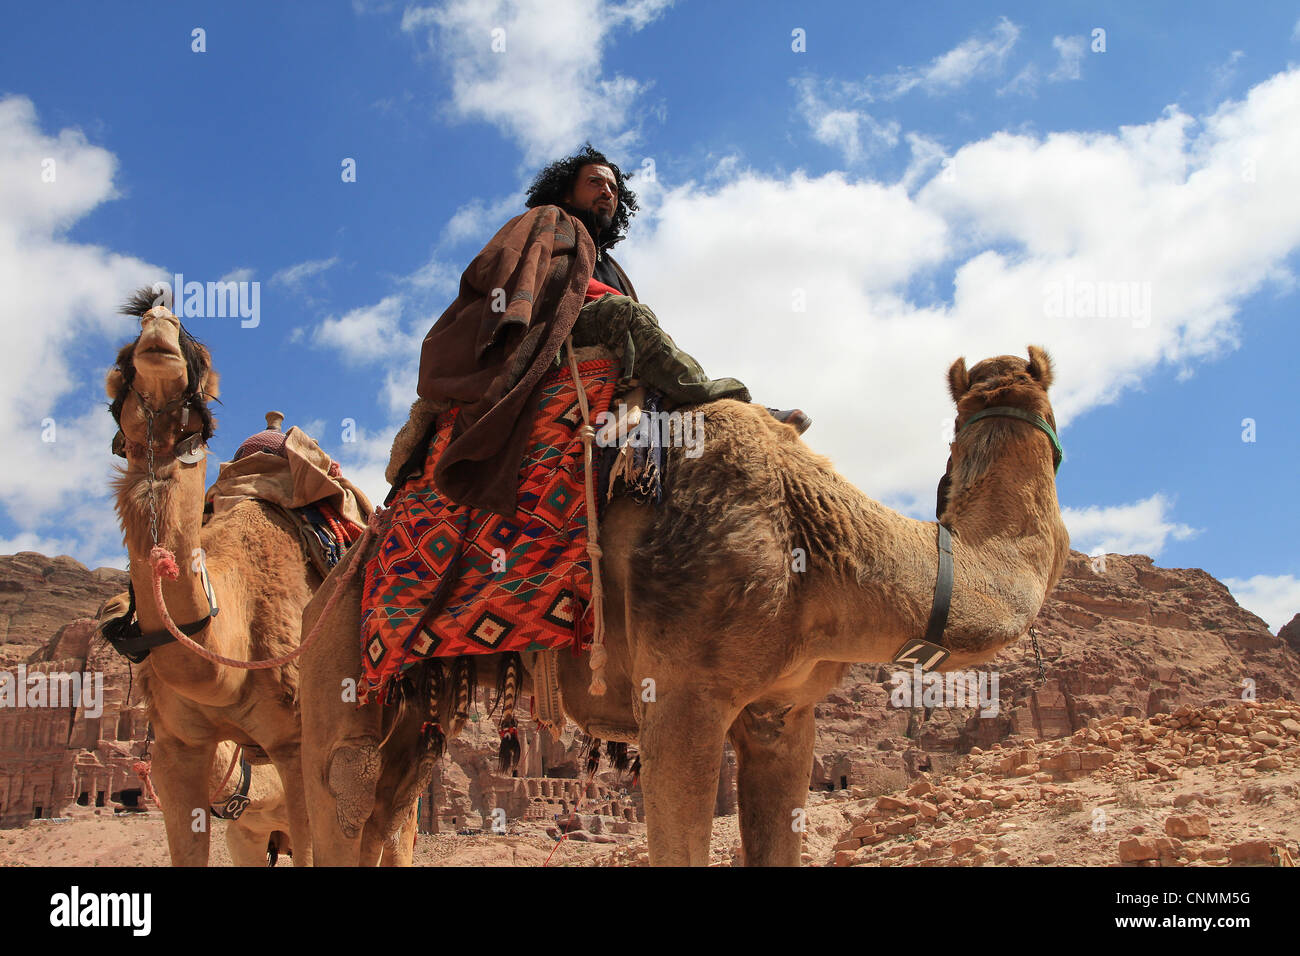 A Bedouin in front of the Royal tombs in Petra trying to hire tourists for a ride with his camels, Jordan. Stock Photo